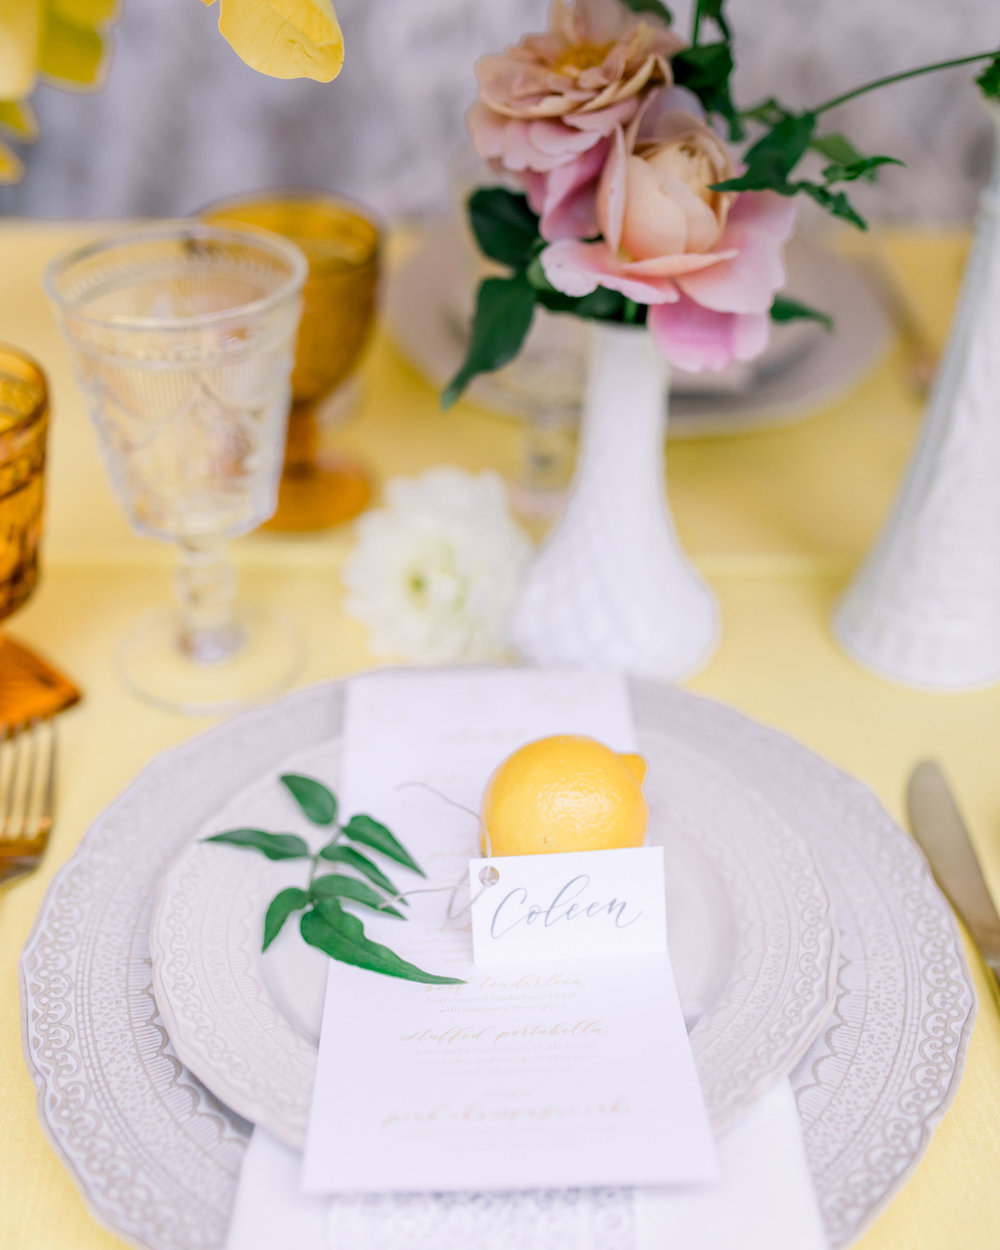 Whimsical Garden Wedding Unique Lemon Place Cards. Photo by Kirsten Wilson Photography. Host: Styled Shoots Across America